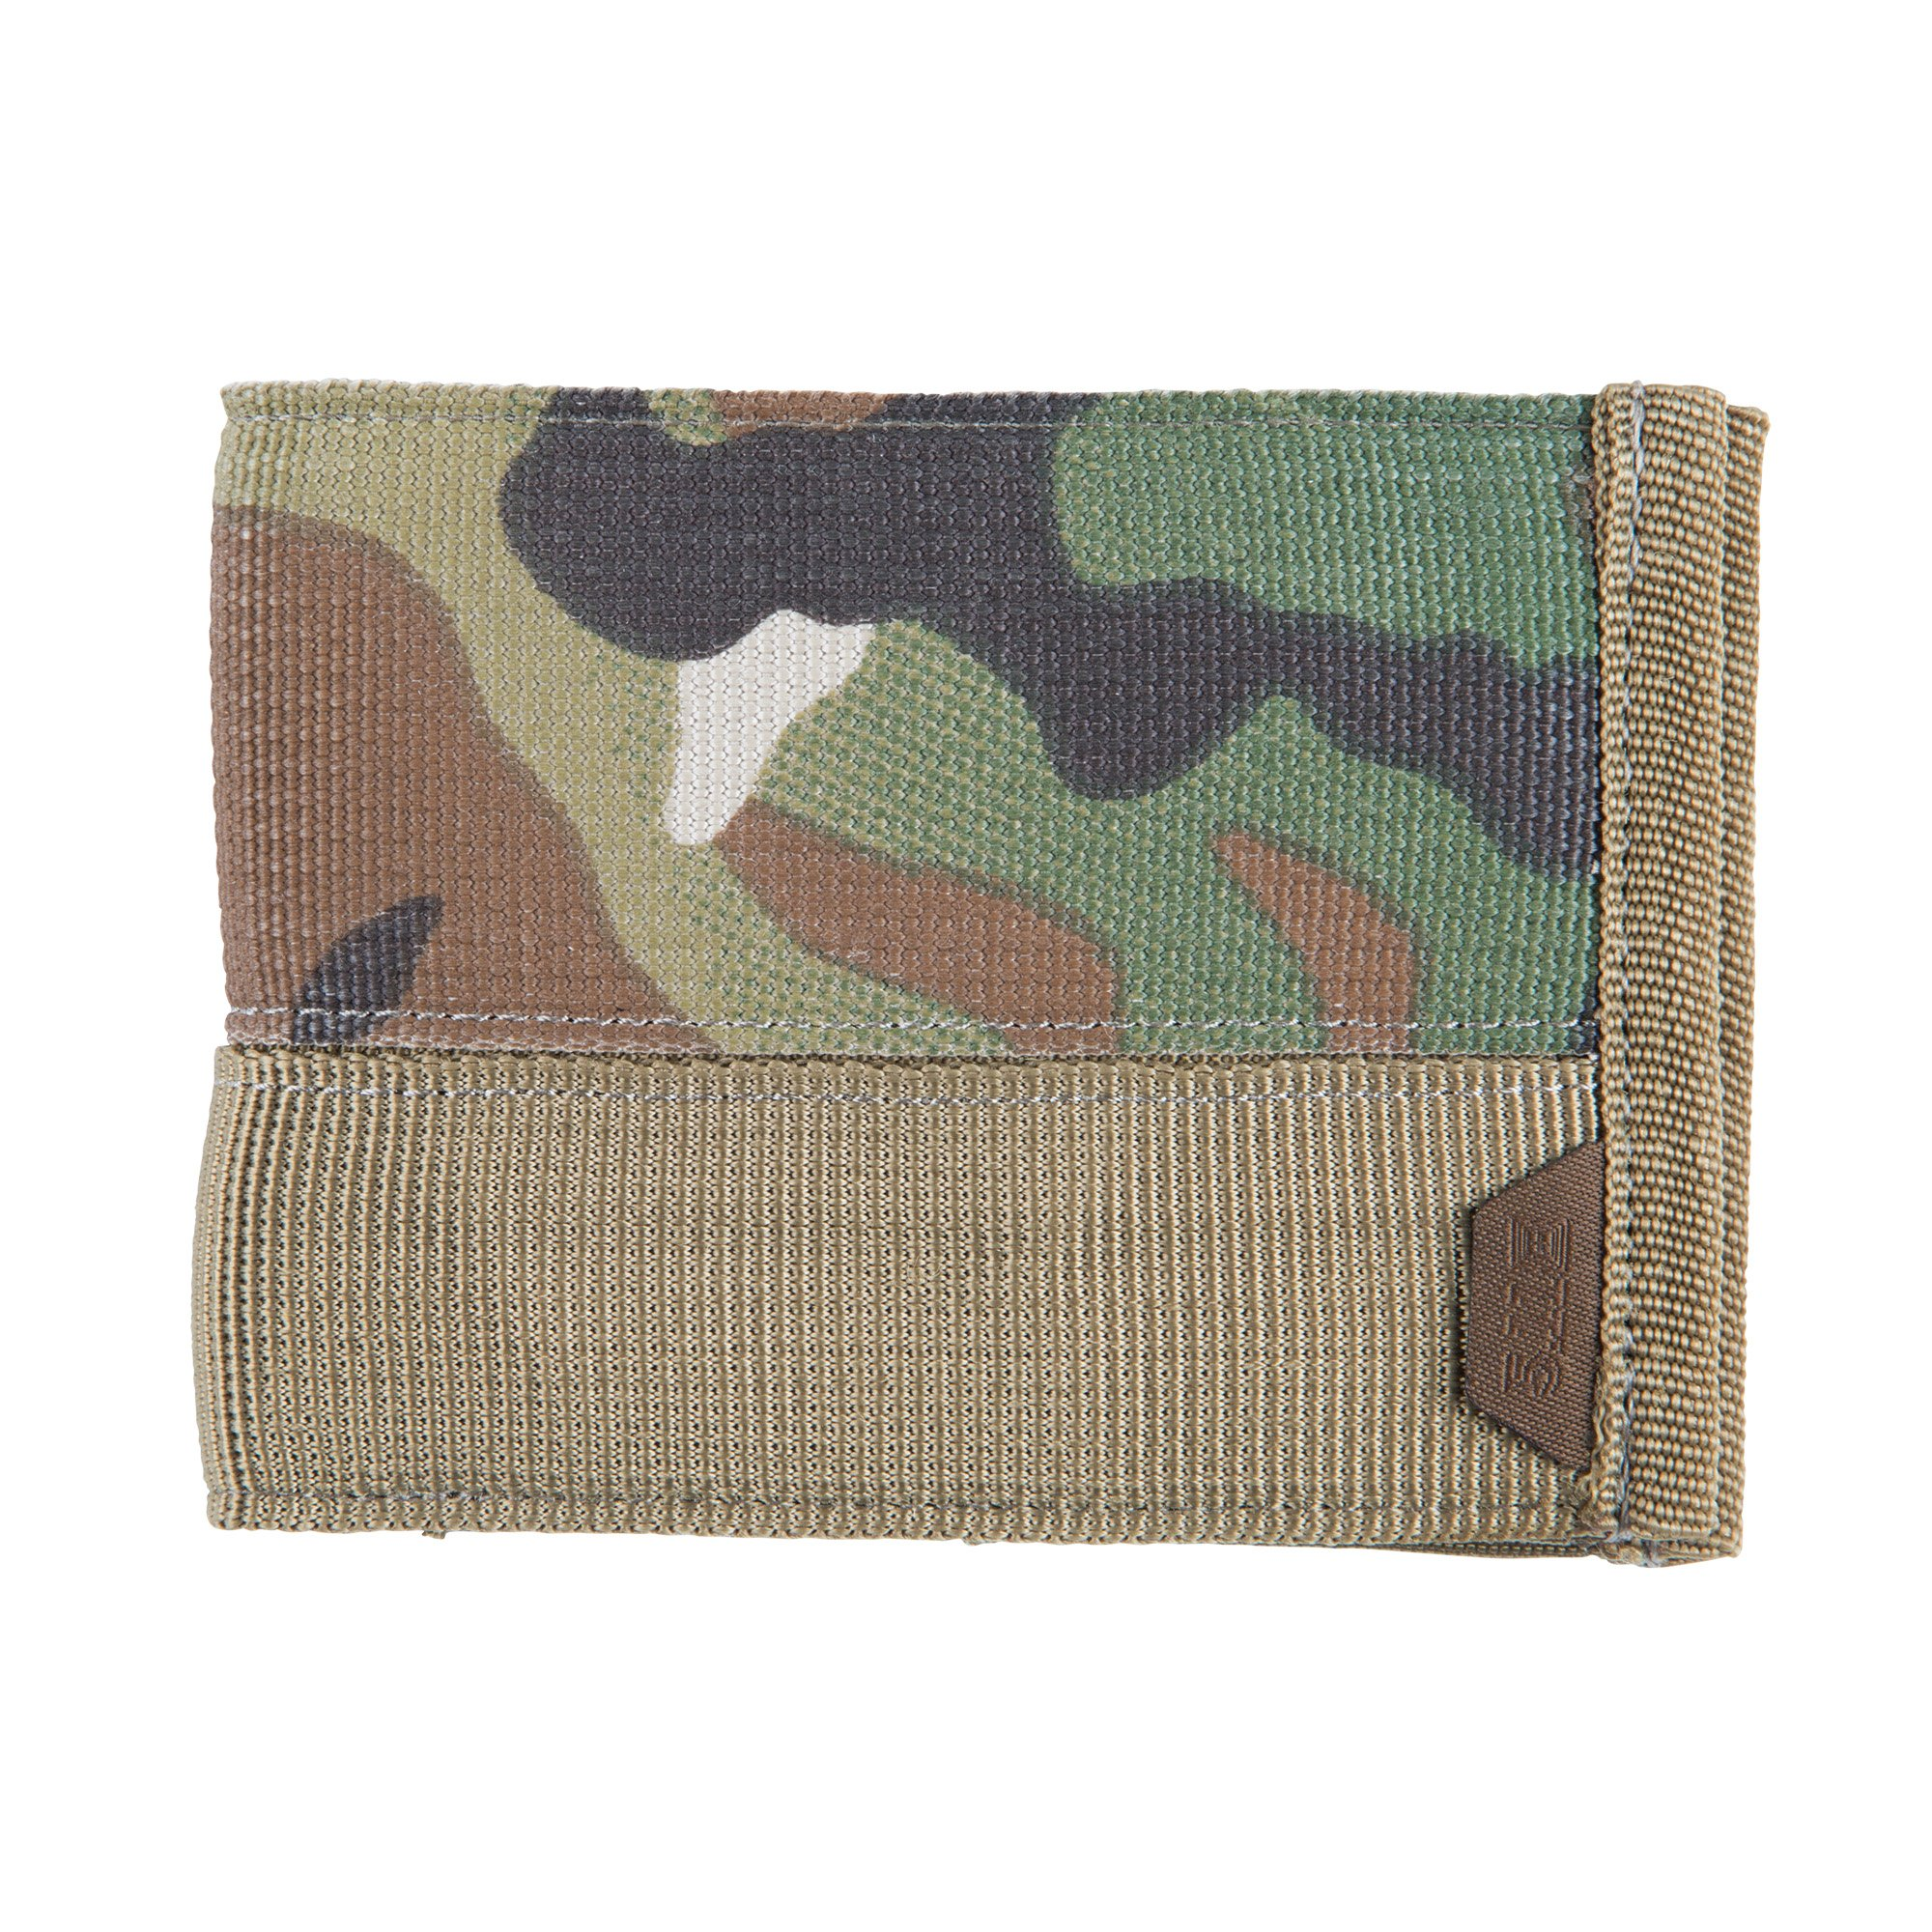 TRACKER BIFOLD WALLET - MultiCam